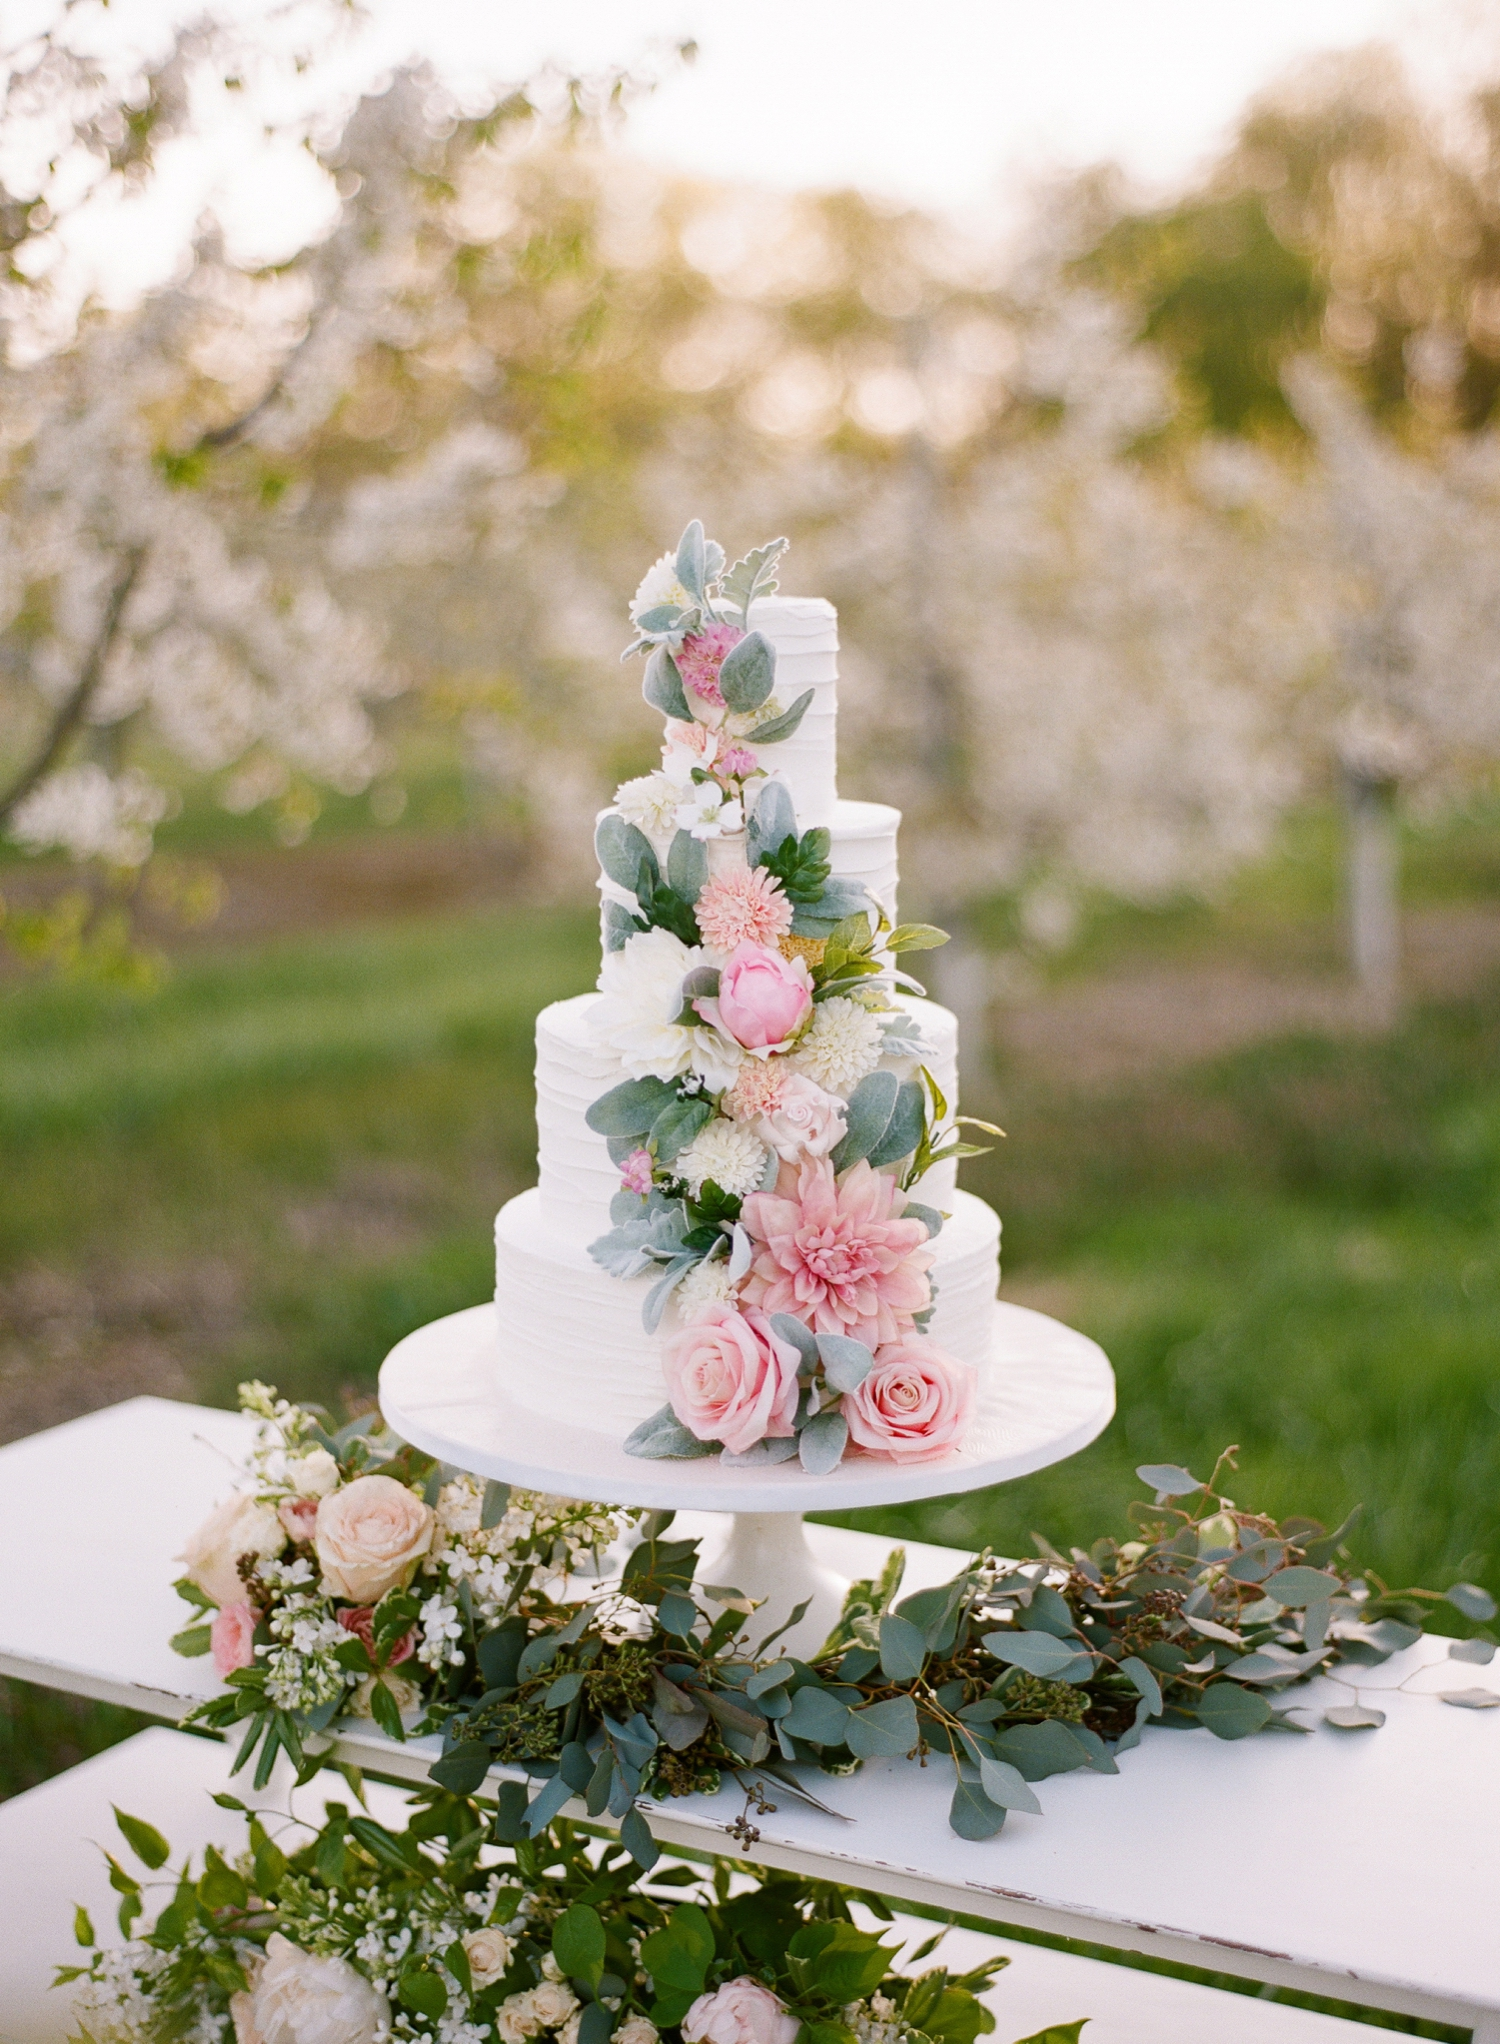 orchard bridal inspiration cake